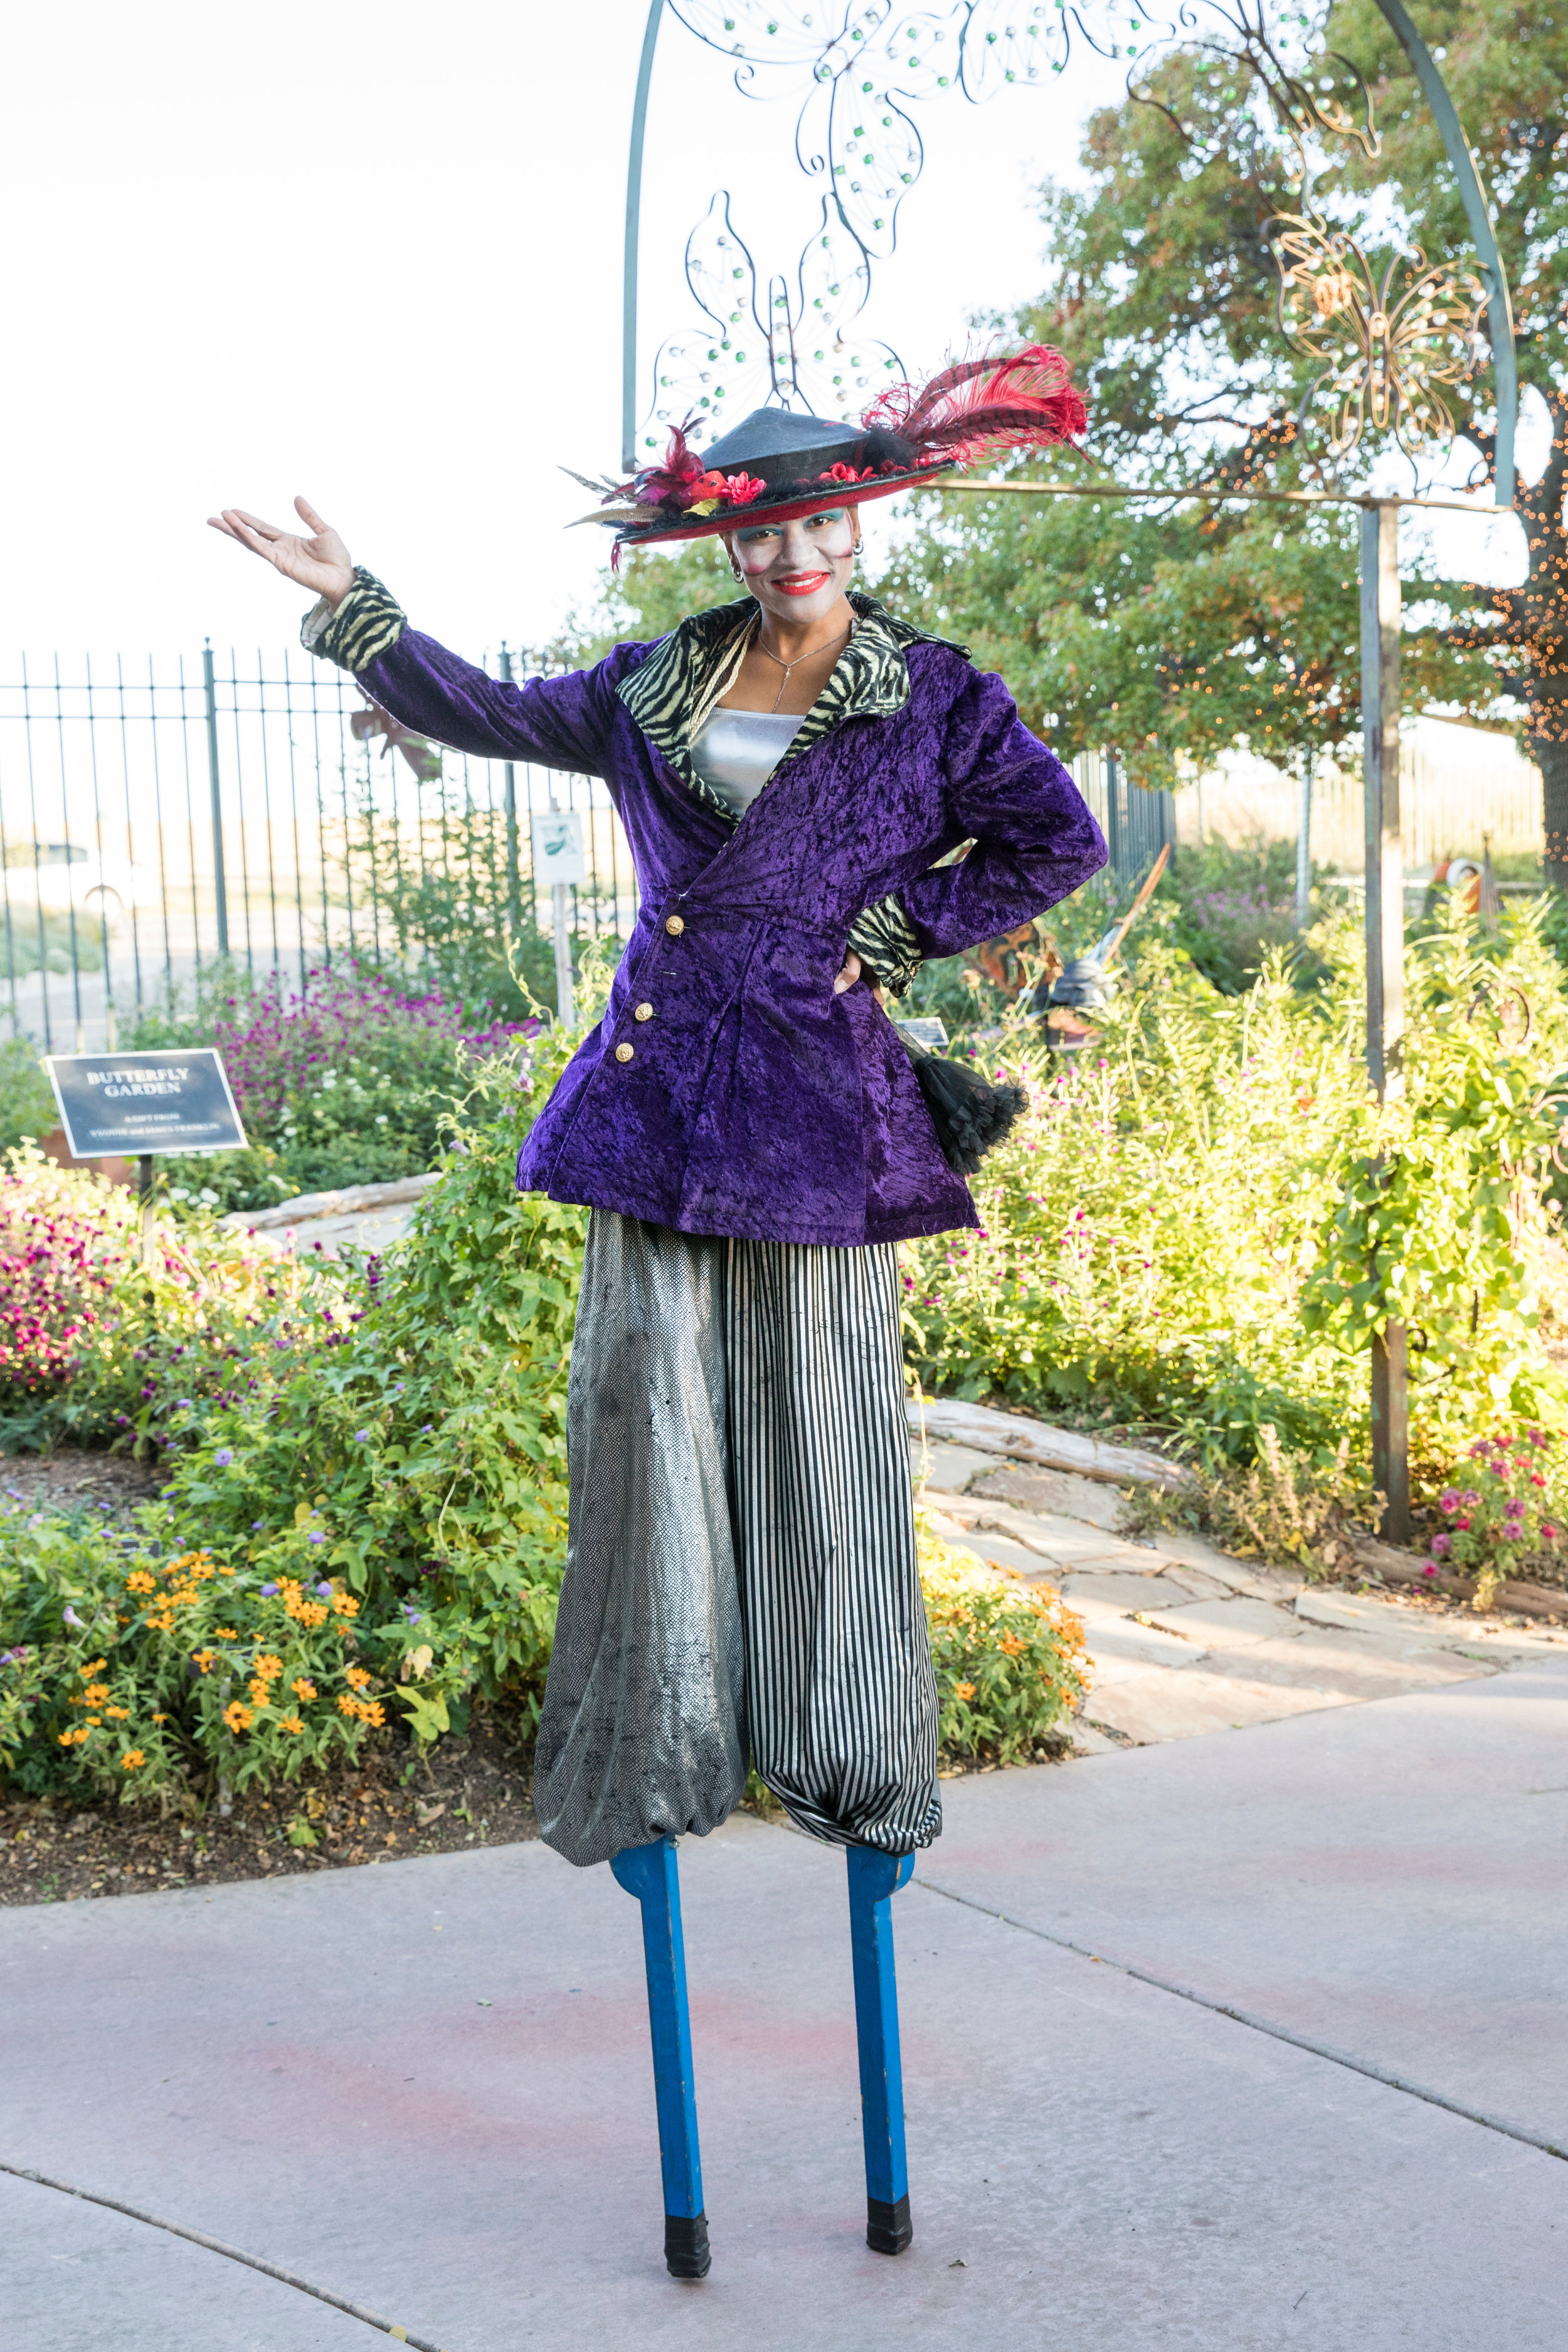 Entertainment at the Mad Hatter's Ball at Amarillo Botanical Gardens, photographed by jenny Edwards Photo,